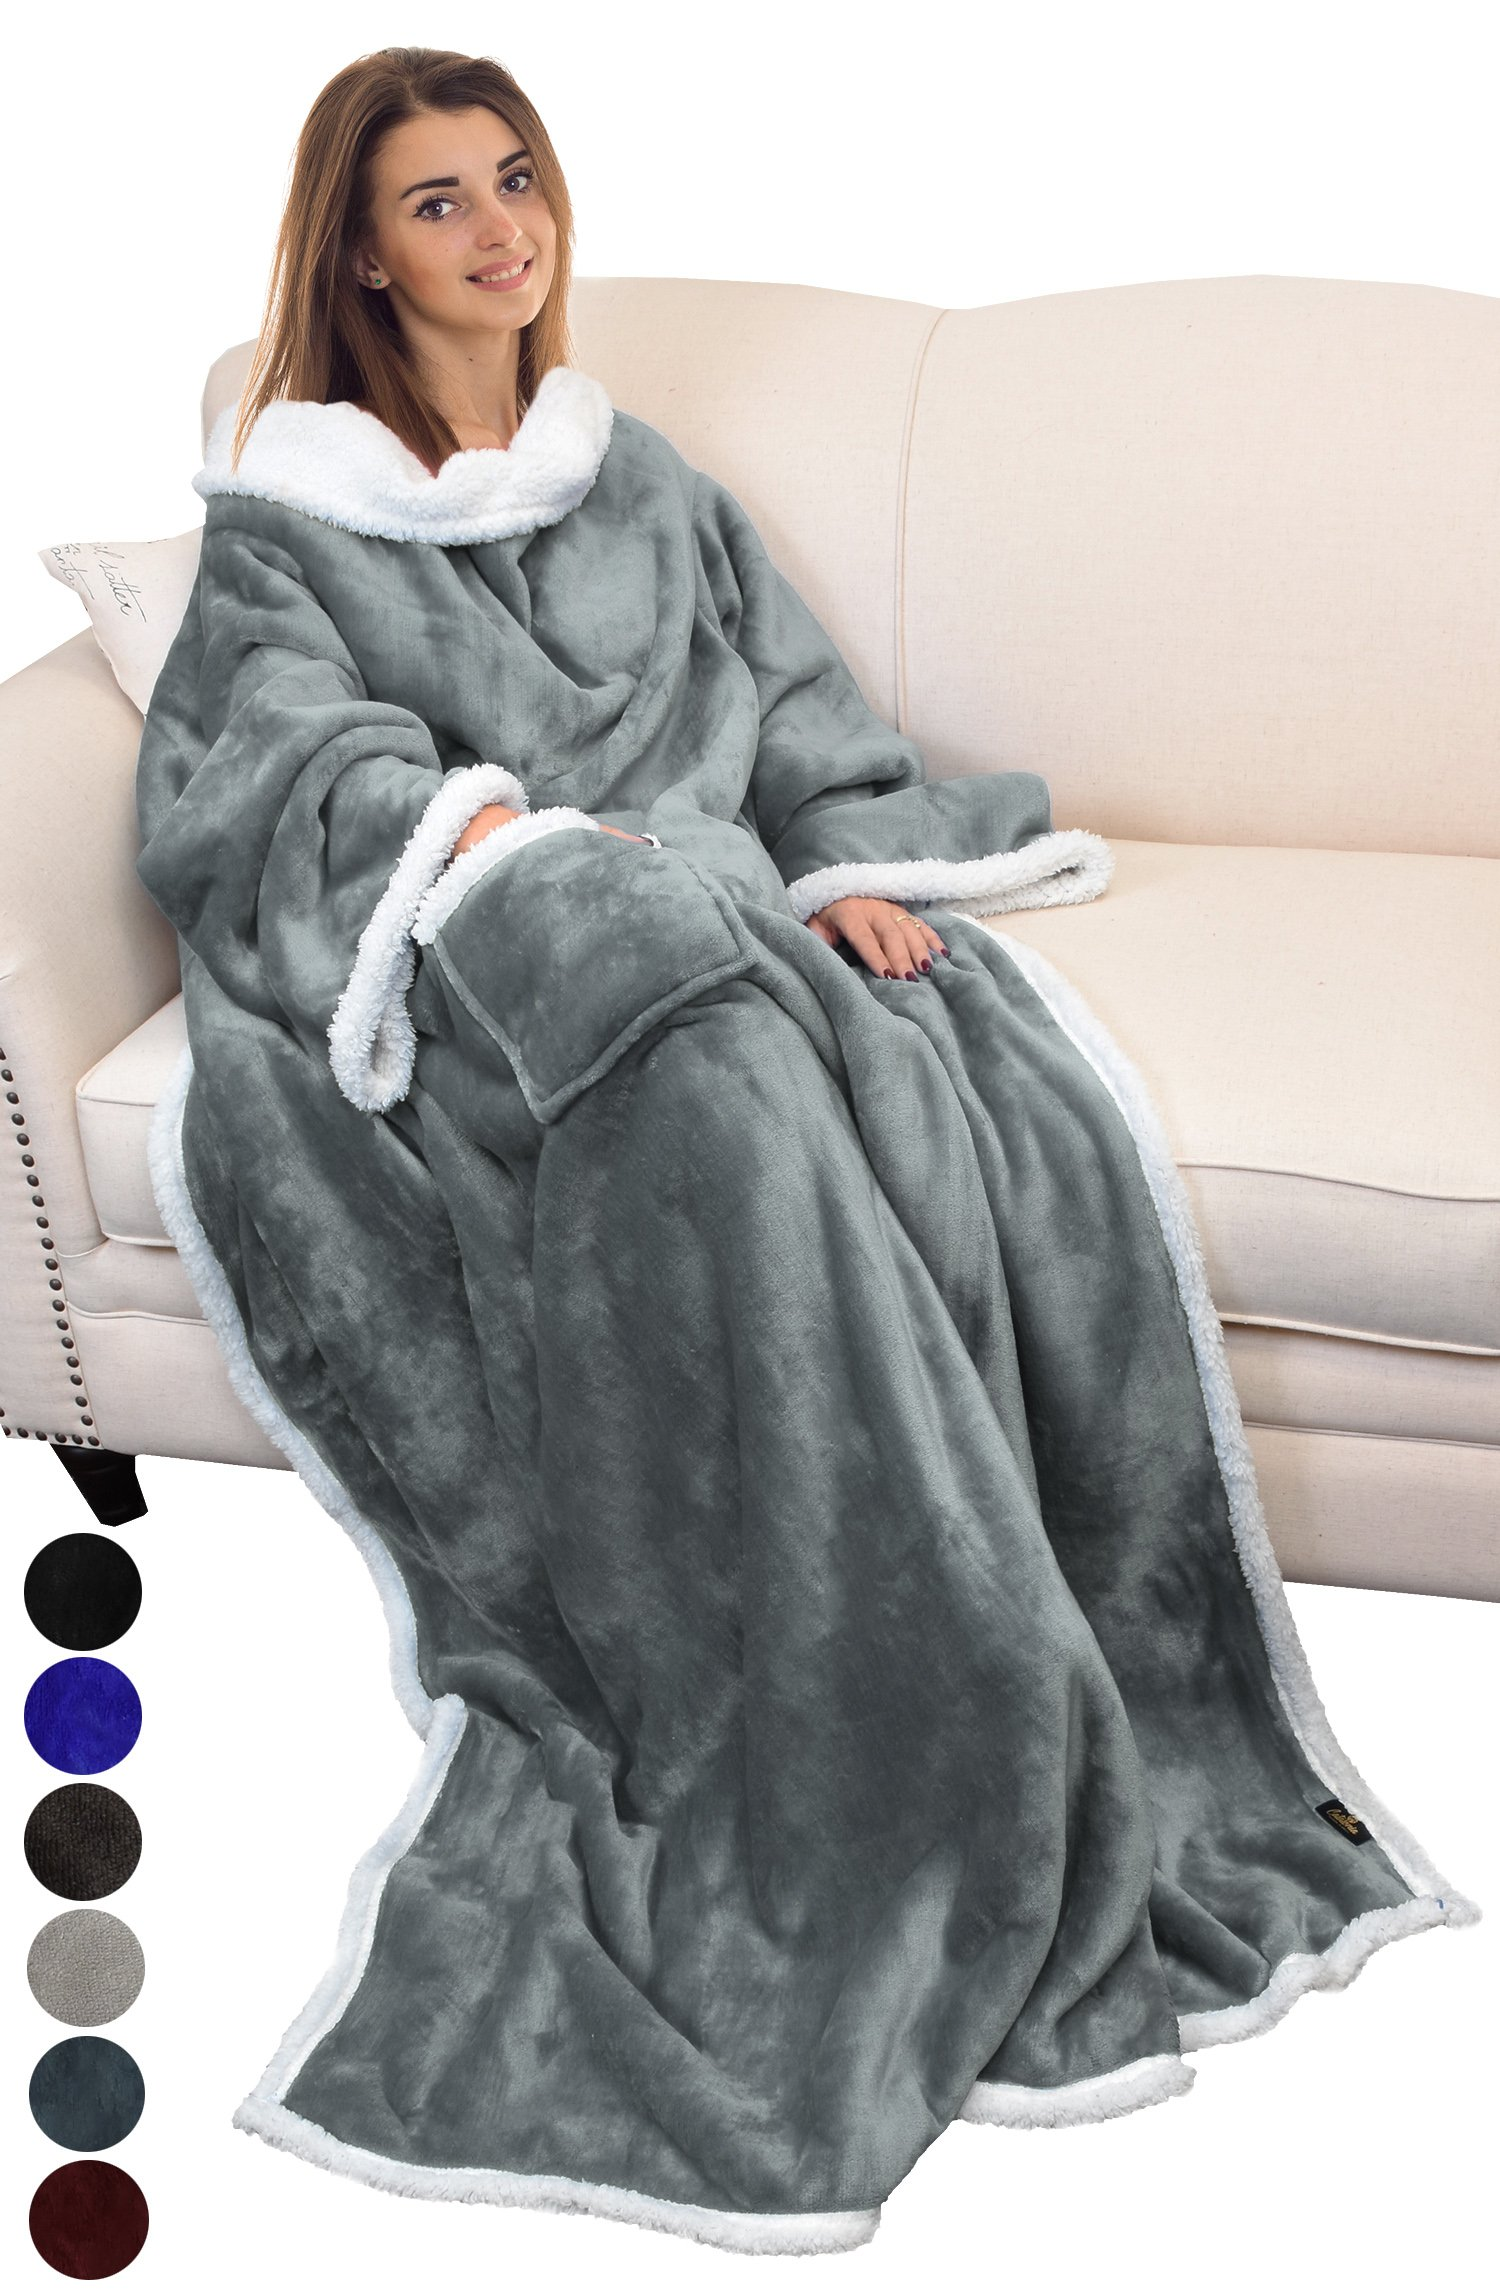 Catalonia Sherpa Wearable Blanket with Sleeves Arms,Super Soft Warm Comfy Large Fleece Plush Sleeved TV Throws Wrap Robe Blanket for Adult Women and Men Grey